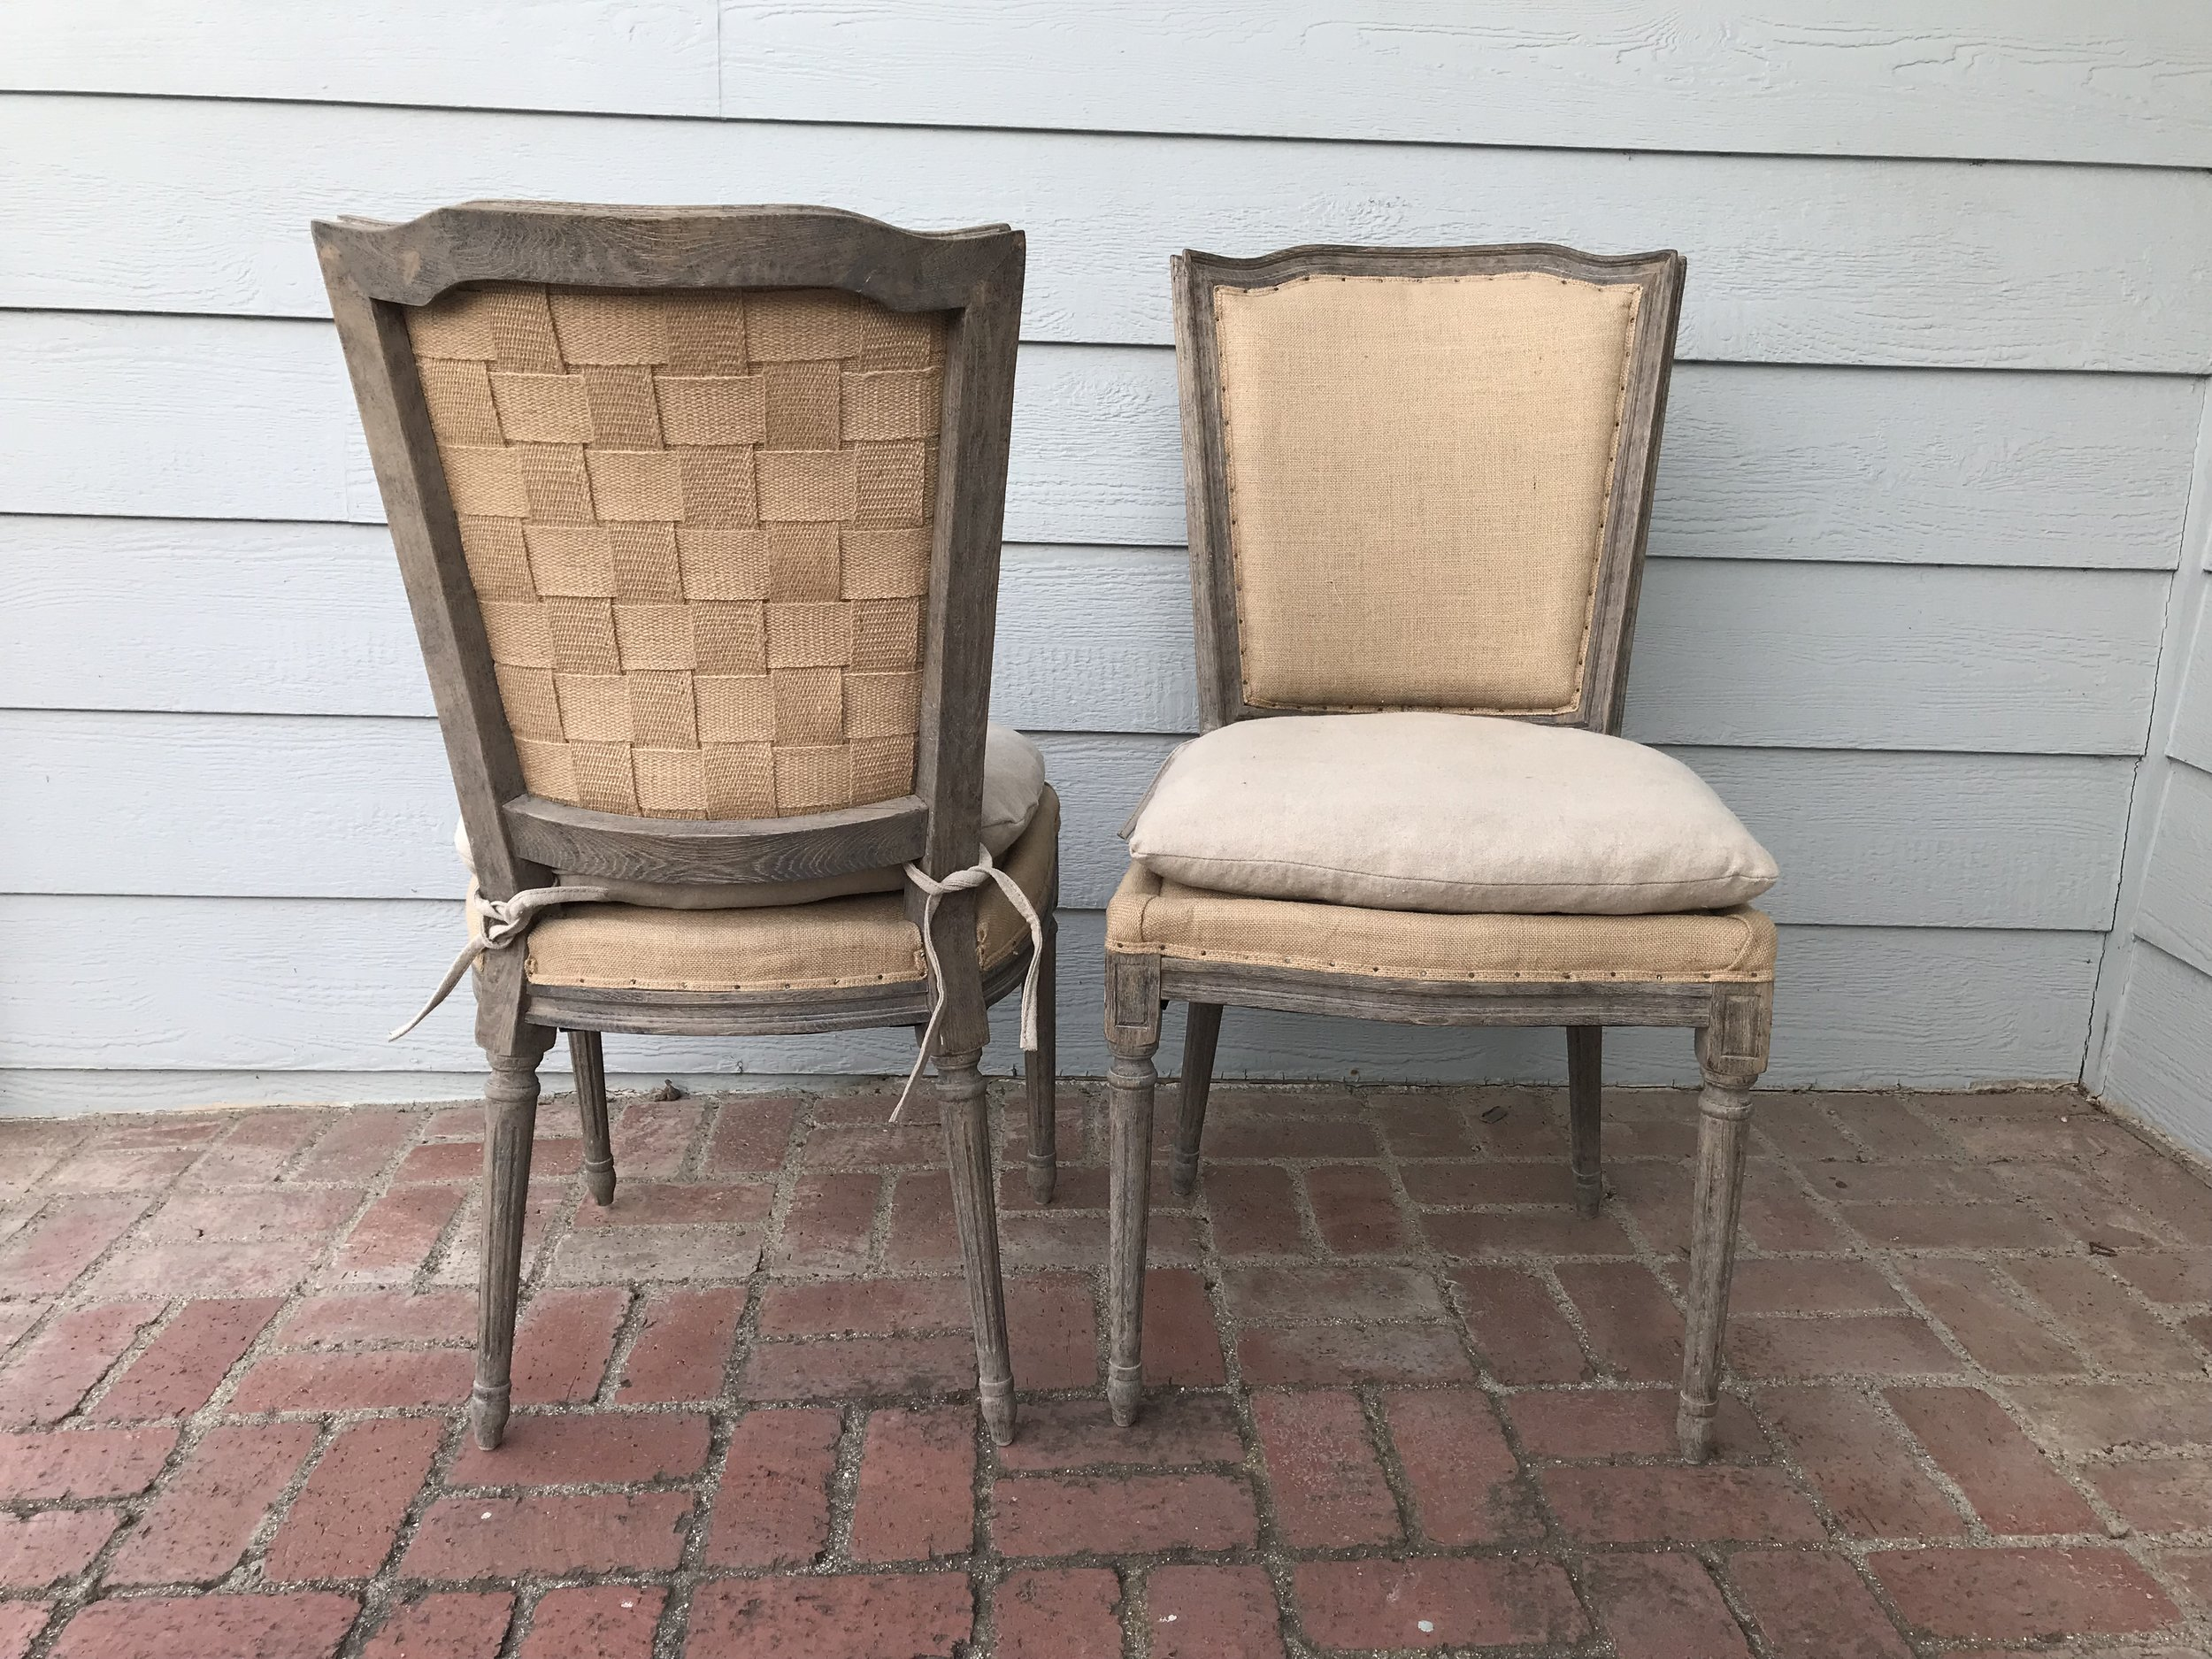 BURLAP BRIDE AND GROOM CHAIRS (2) - $70